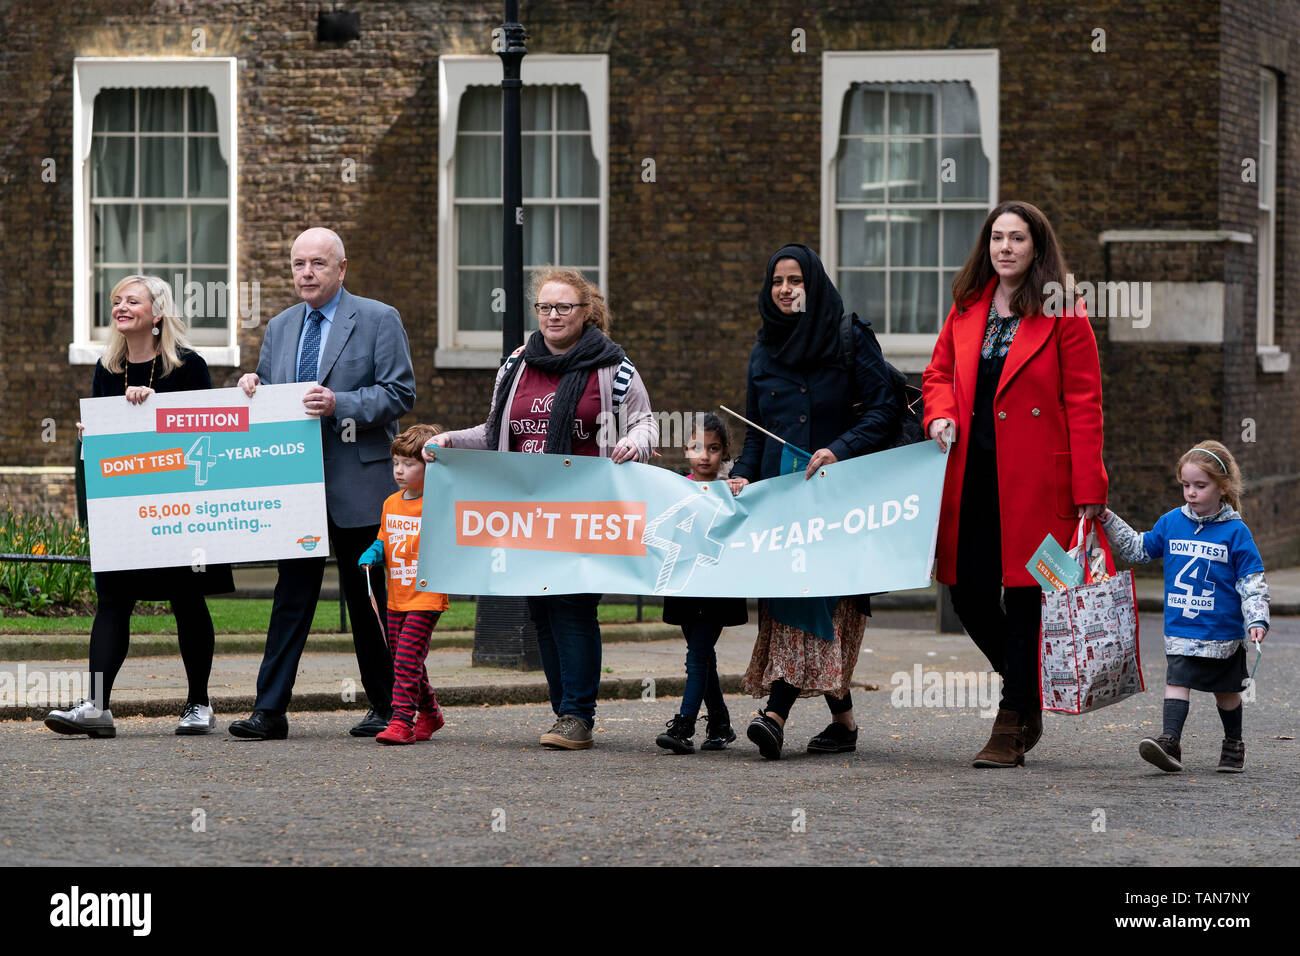 Pre-schoolers Safa Patel (centre), Alex Harrison (orange top) and Isla Tart (blue top) with their parents and Tracy Brabin MP (left) (Shadow Minister for Early Years) and Jack Dromey (2L) (Shadow Minister for Pensions) deliver a 65,000 signature petition to 10 Downing Street calling for a halt to plans to test four-year-olds when they start school.  The protest has been organised by More Than A Score, the alliance  of parents, teachers, heads and education experts, working together to call for change to the government's policy on standardised testing.  They point out that, from 2020, pupils wi - Stock Image